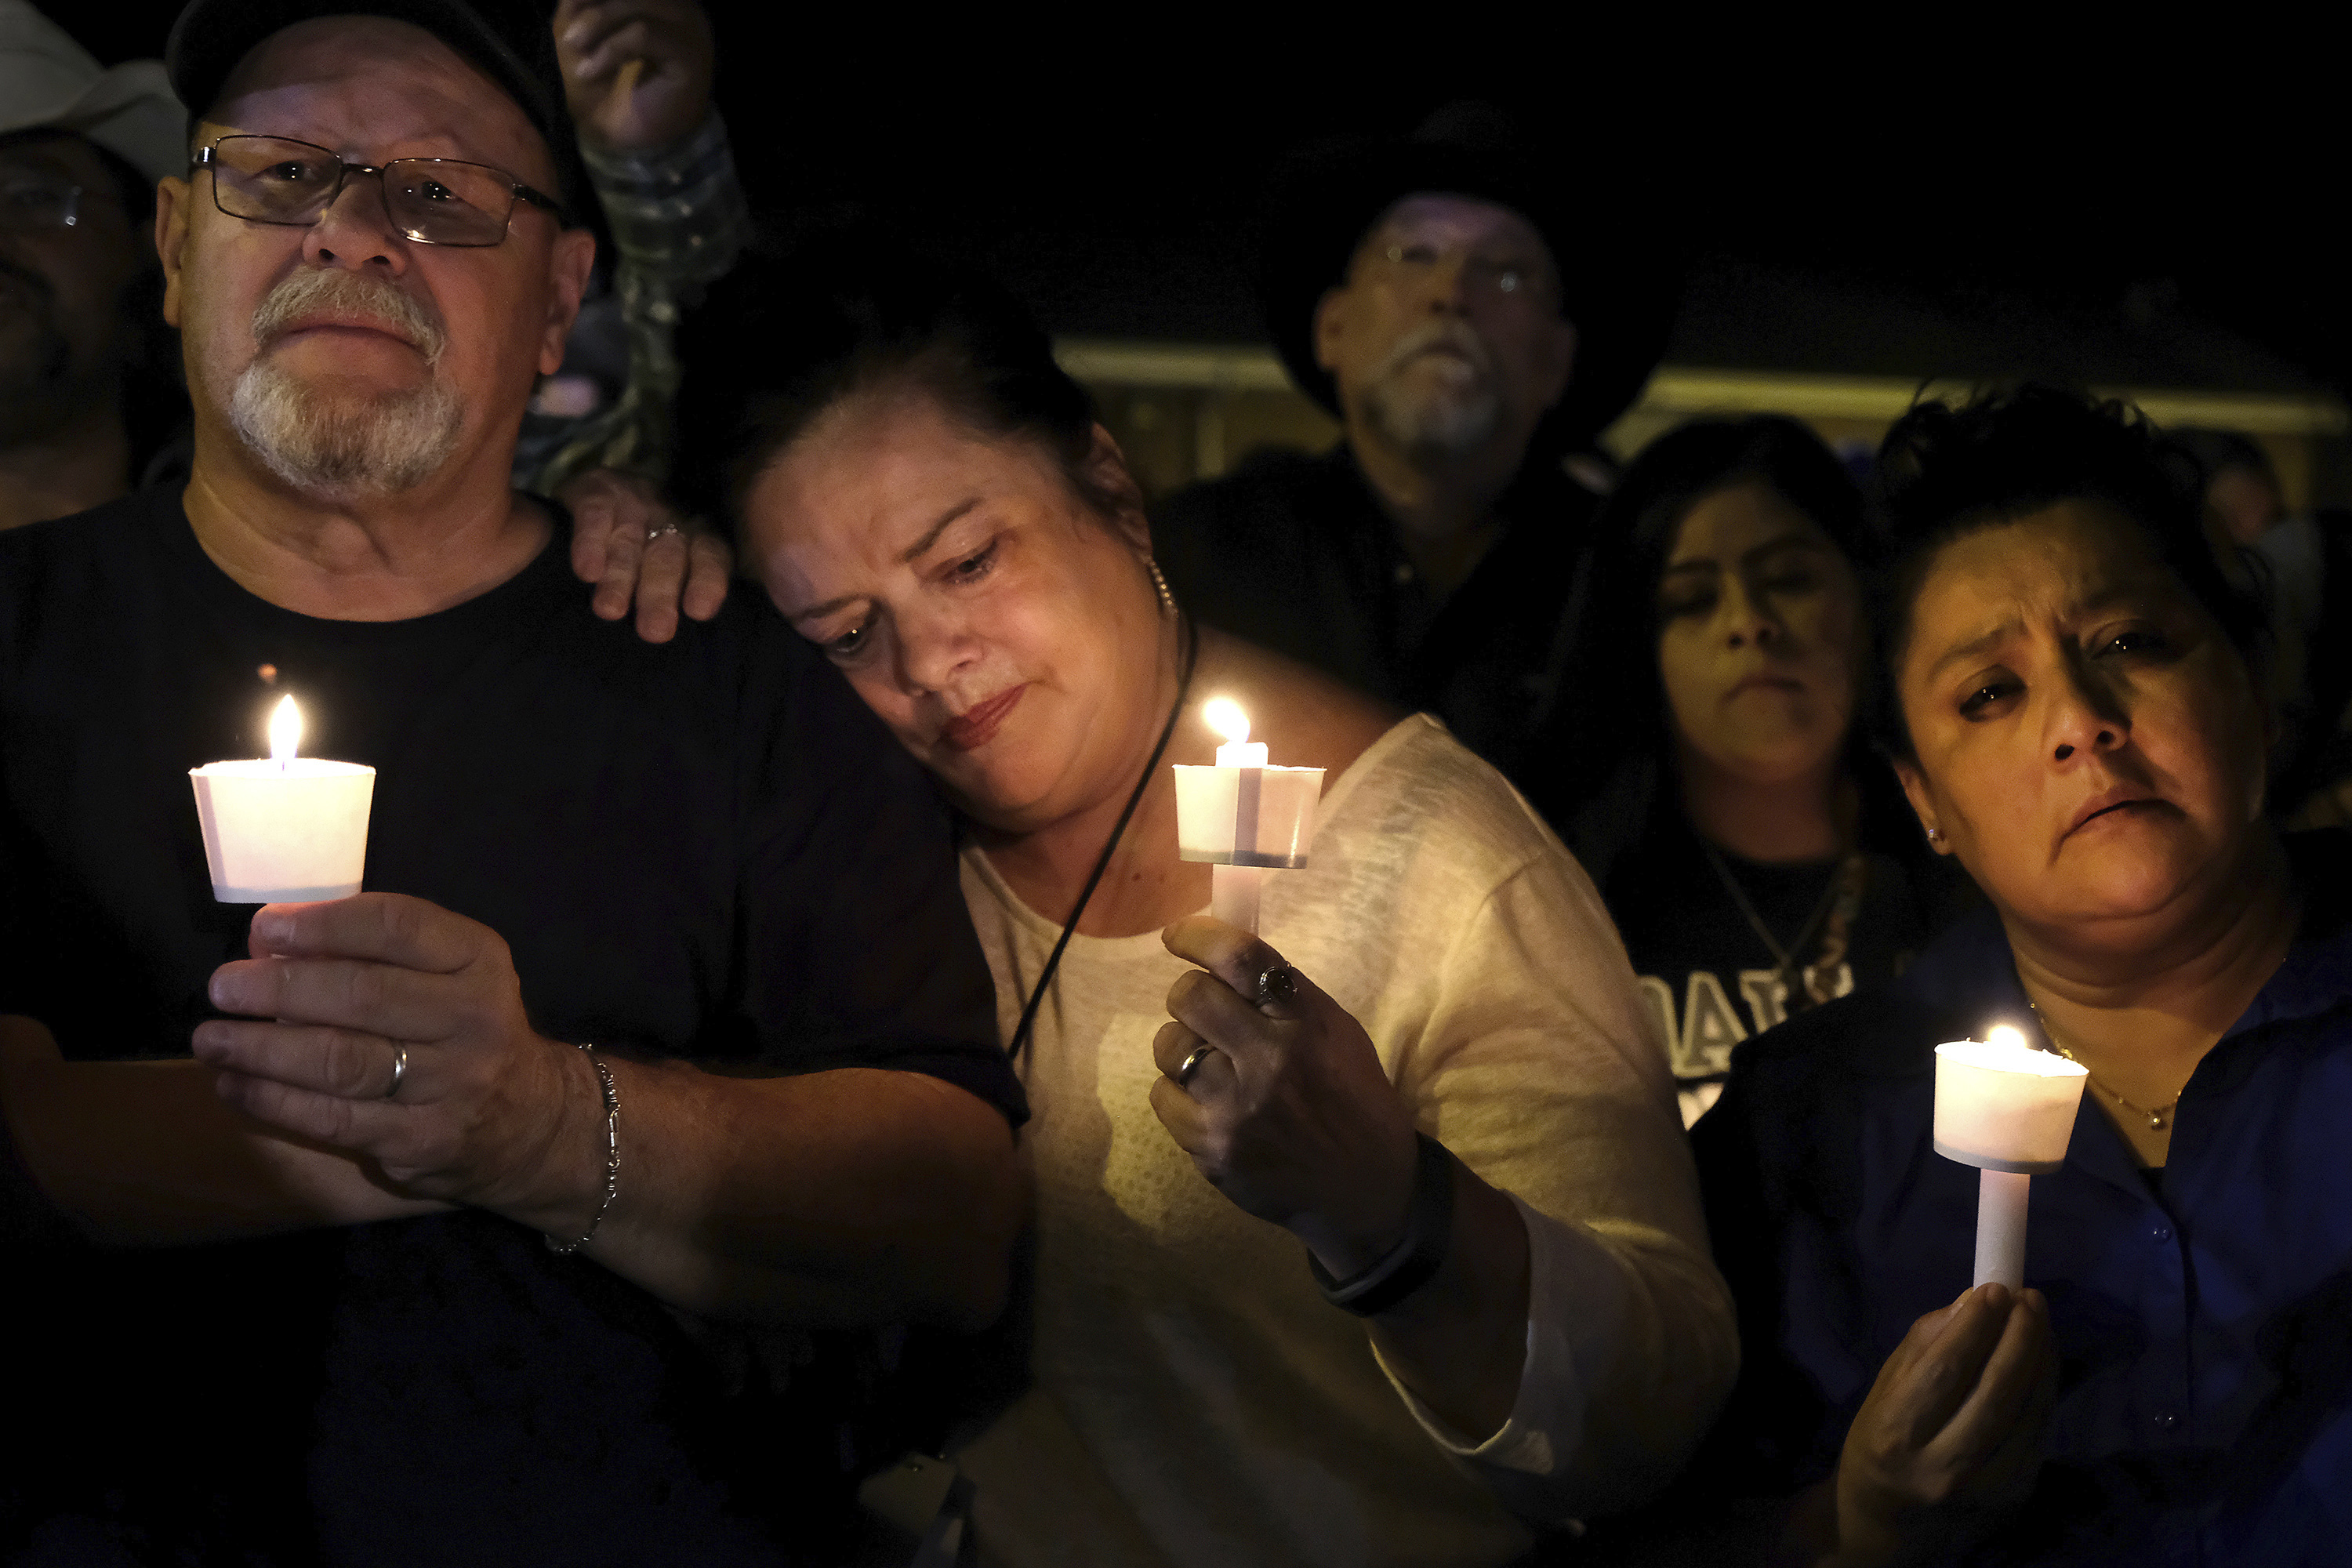 "<div class=""meta image-caption""><div class=""origin-logo origin-image none""><span>none</span></div><span class=""caption-text"">Community members come together for a candlelight vigil for the victims of a deadly church shooting in Sutherland Springs, Texas, Sunday, Nov. 5, 2017. (Laura Skelding/AP Photo)</span></div>"